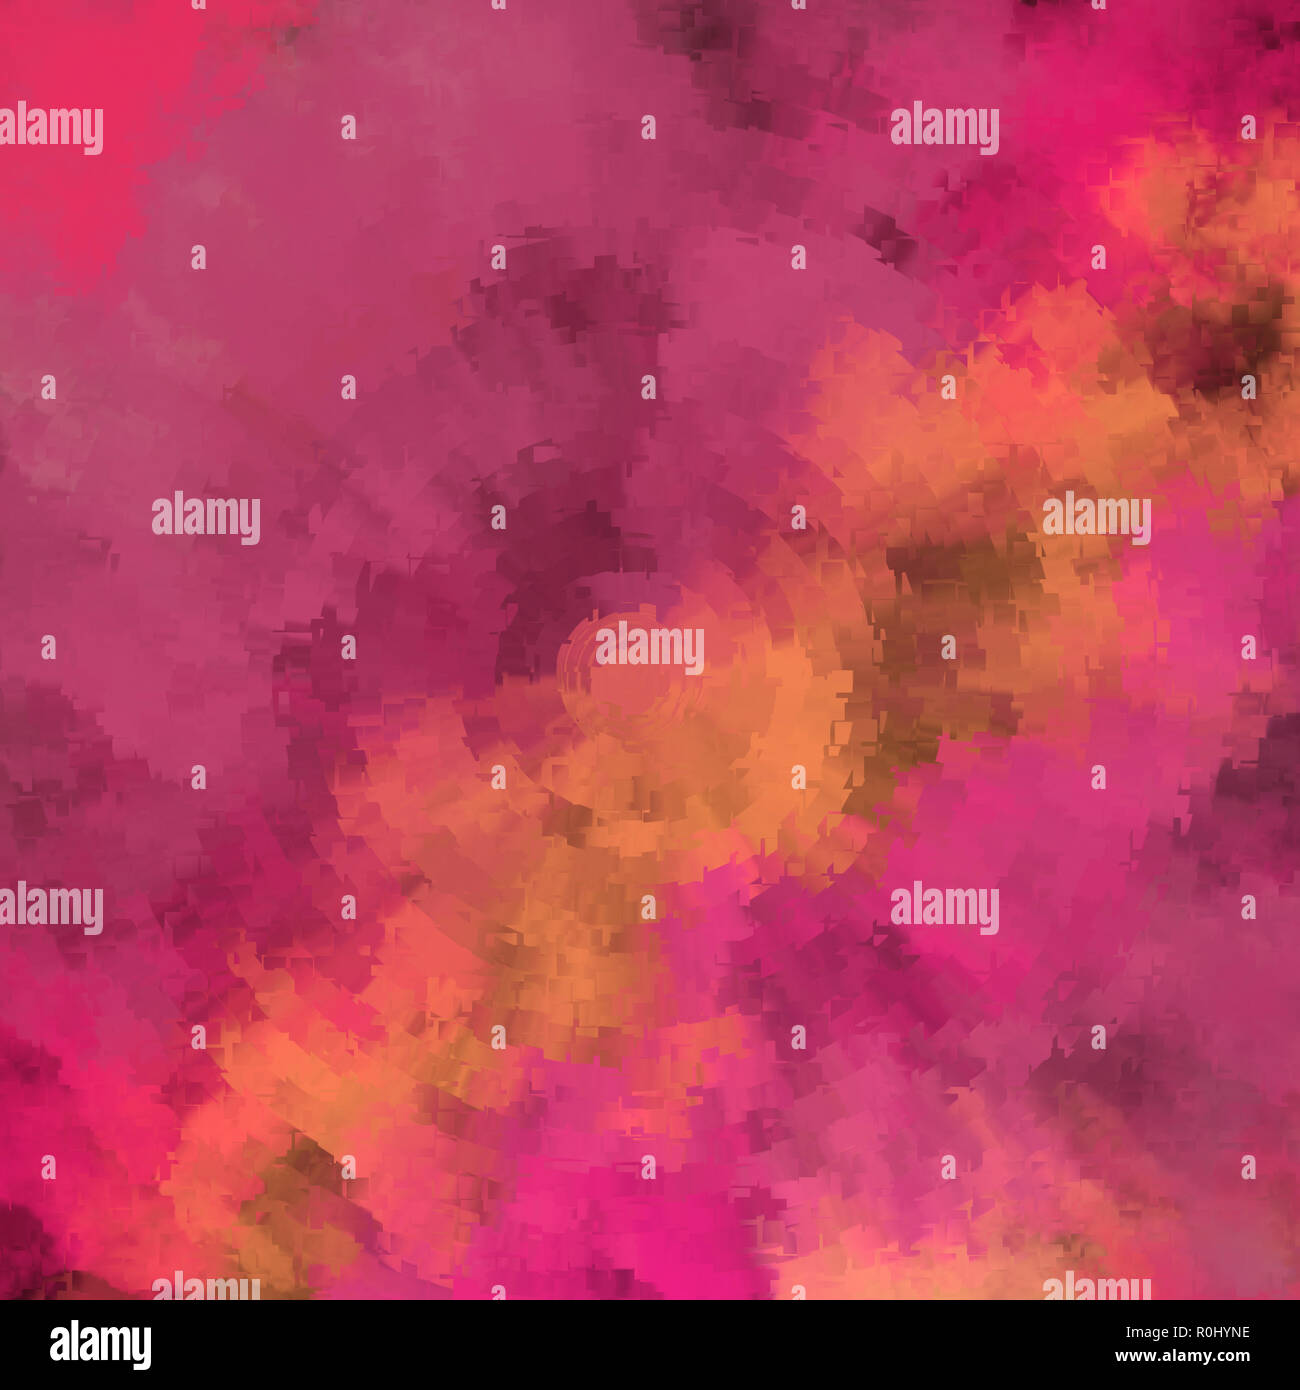 Splash Colorful Room Wall: Abstract Color Powder Splatted. Colorful Powder Splash For